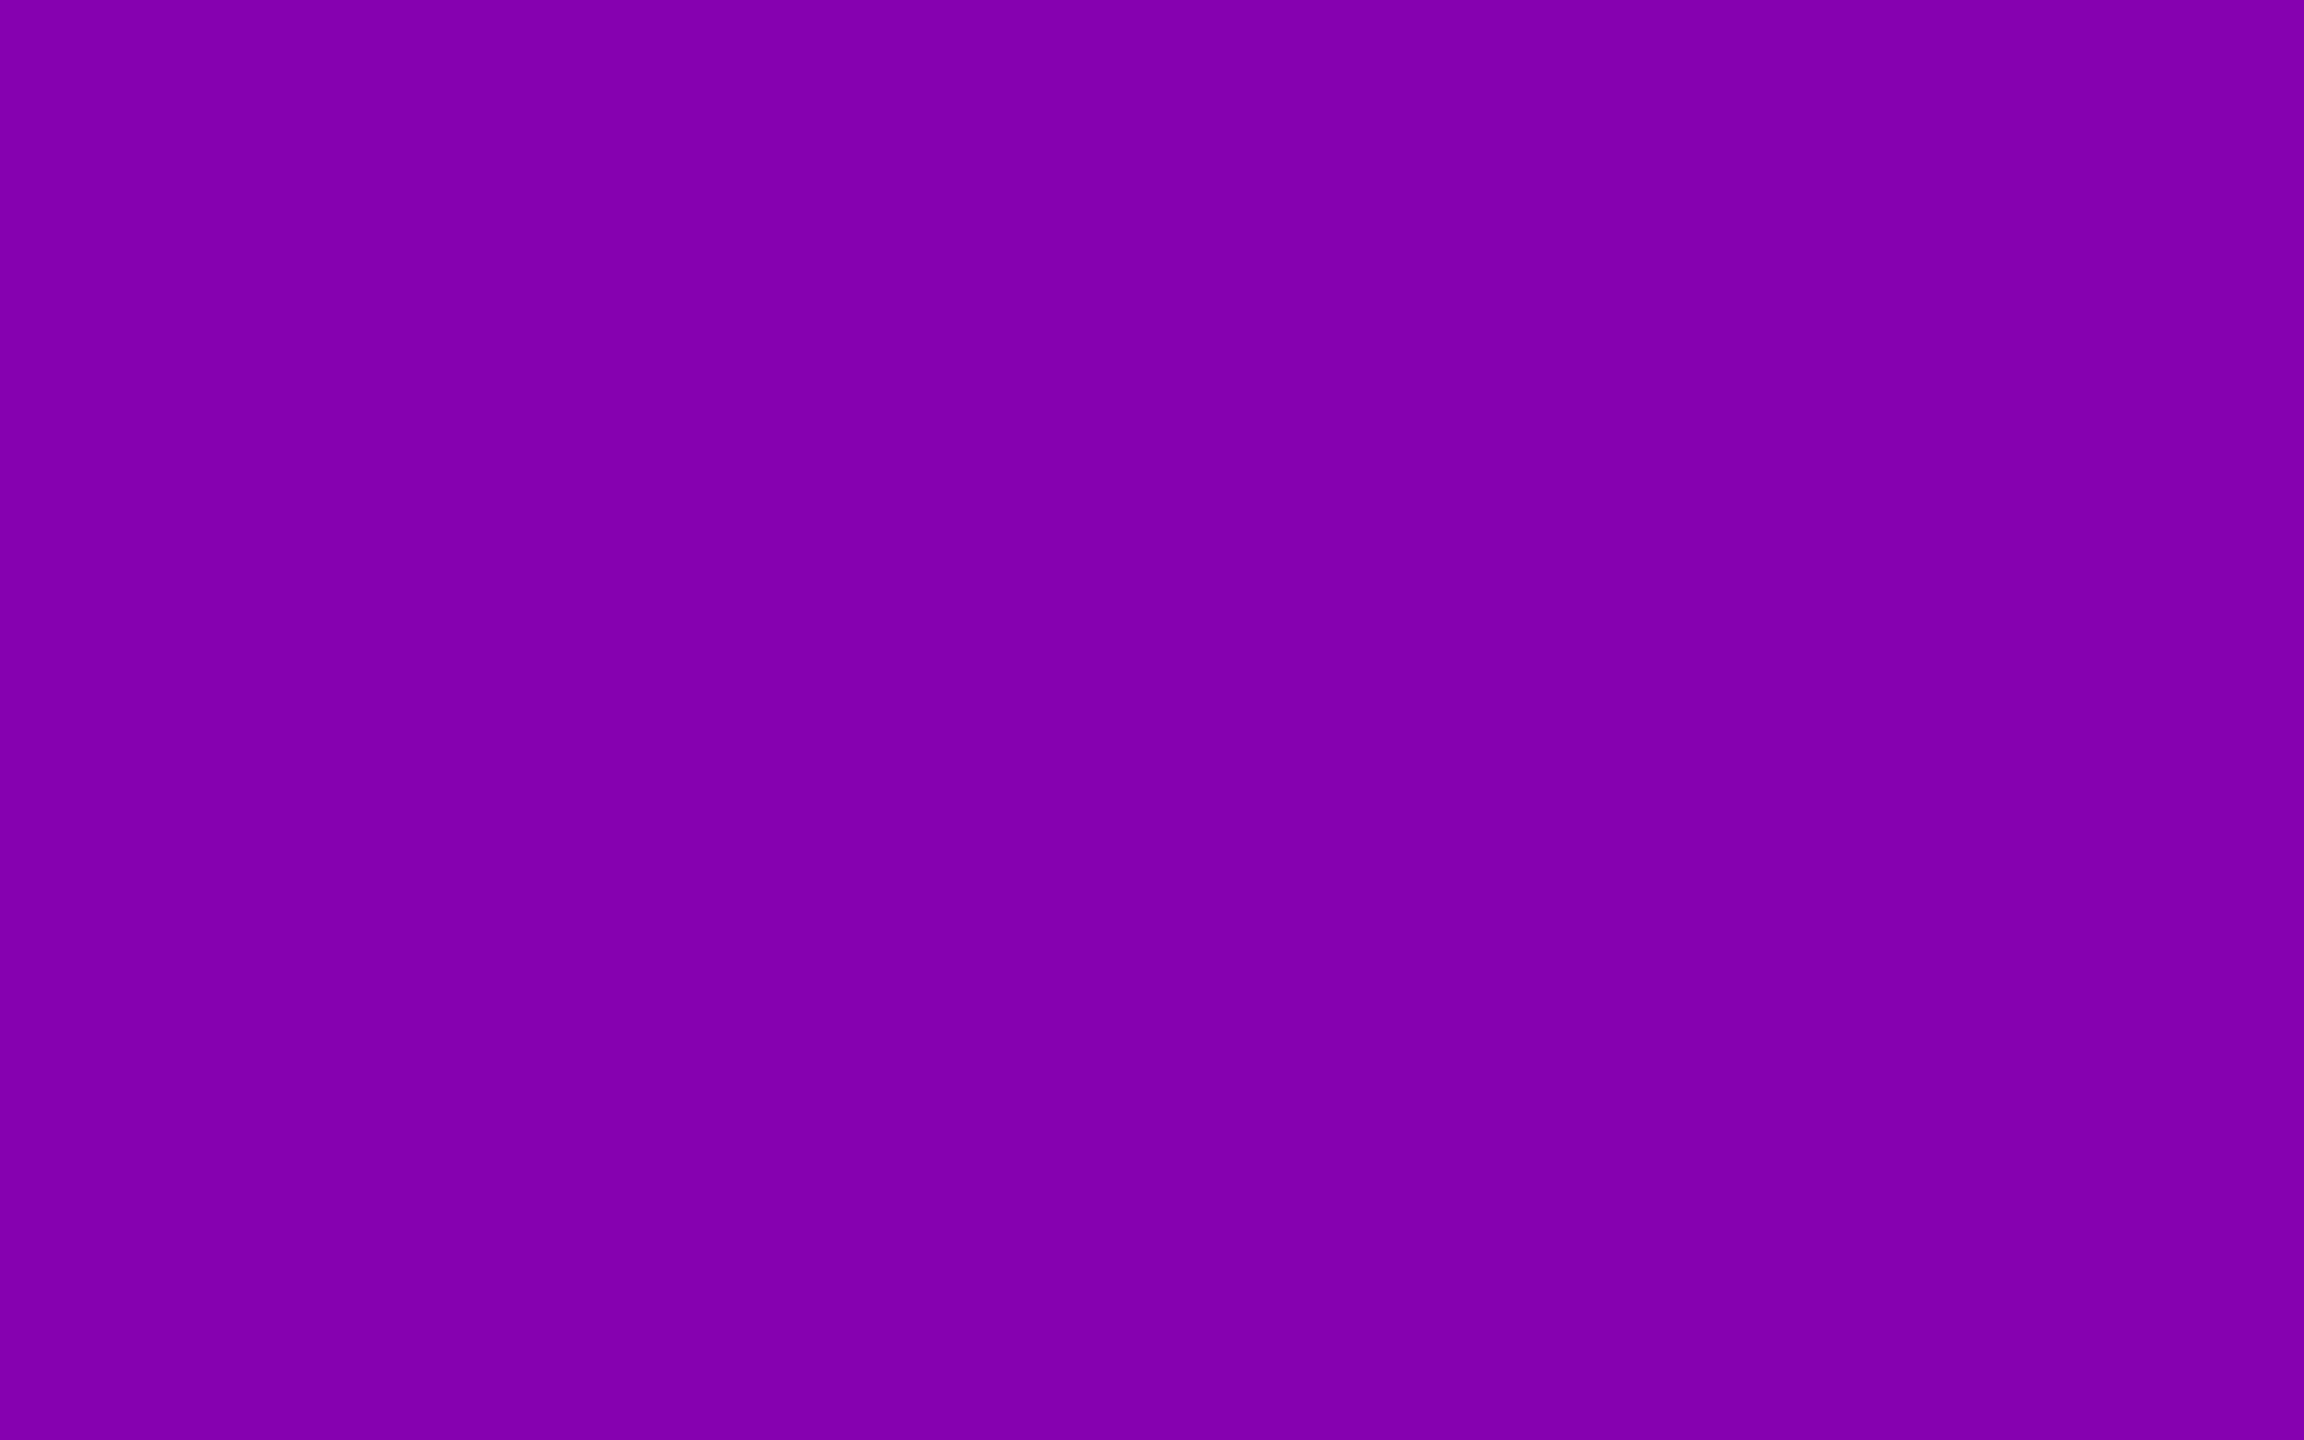 2304x1440 Violet RYB Solid Color Background